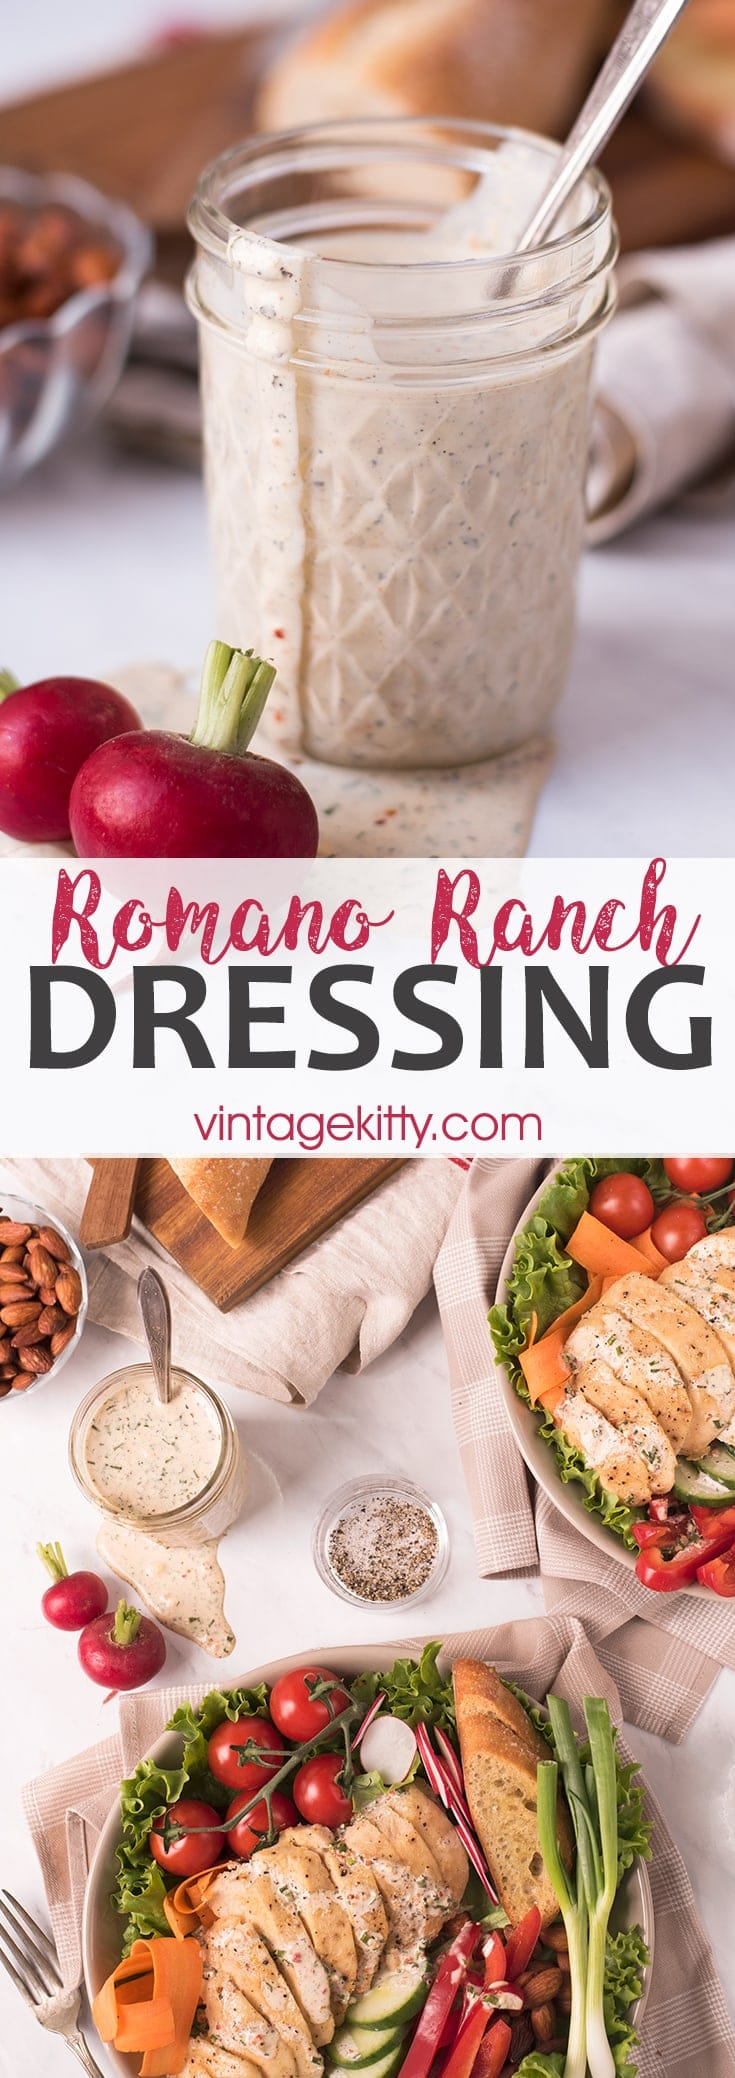 Walk right by that salad dressing aisle! Dried herbs and spices make this ranch dressing recipe a breeze to make! Plus it's great on EVERYTHING! #ranchdressing #saladdressing #salad #romanocheese